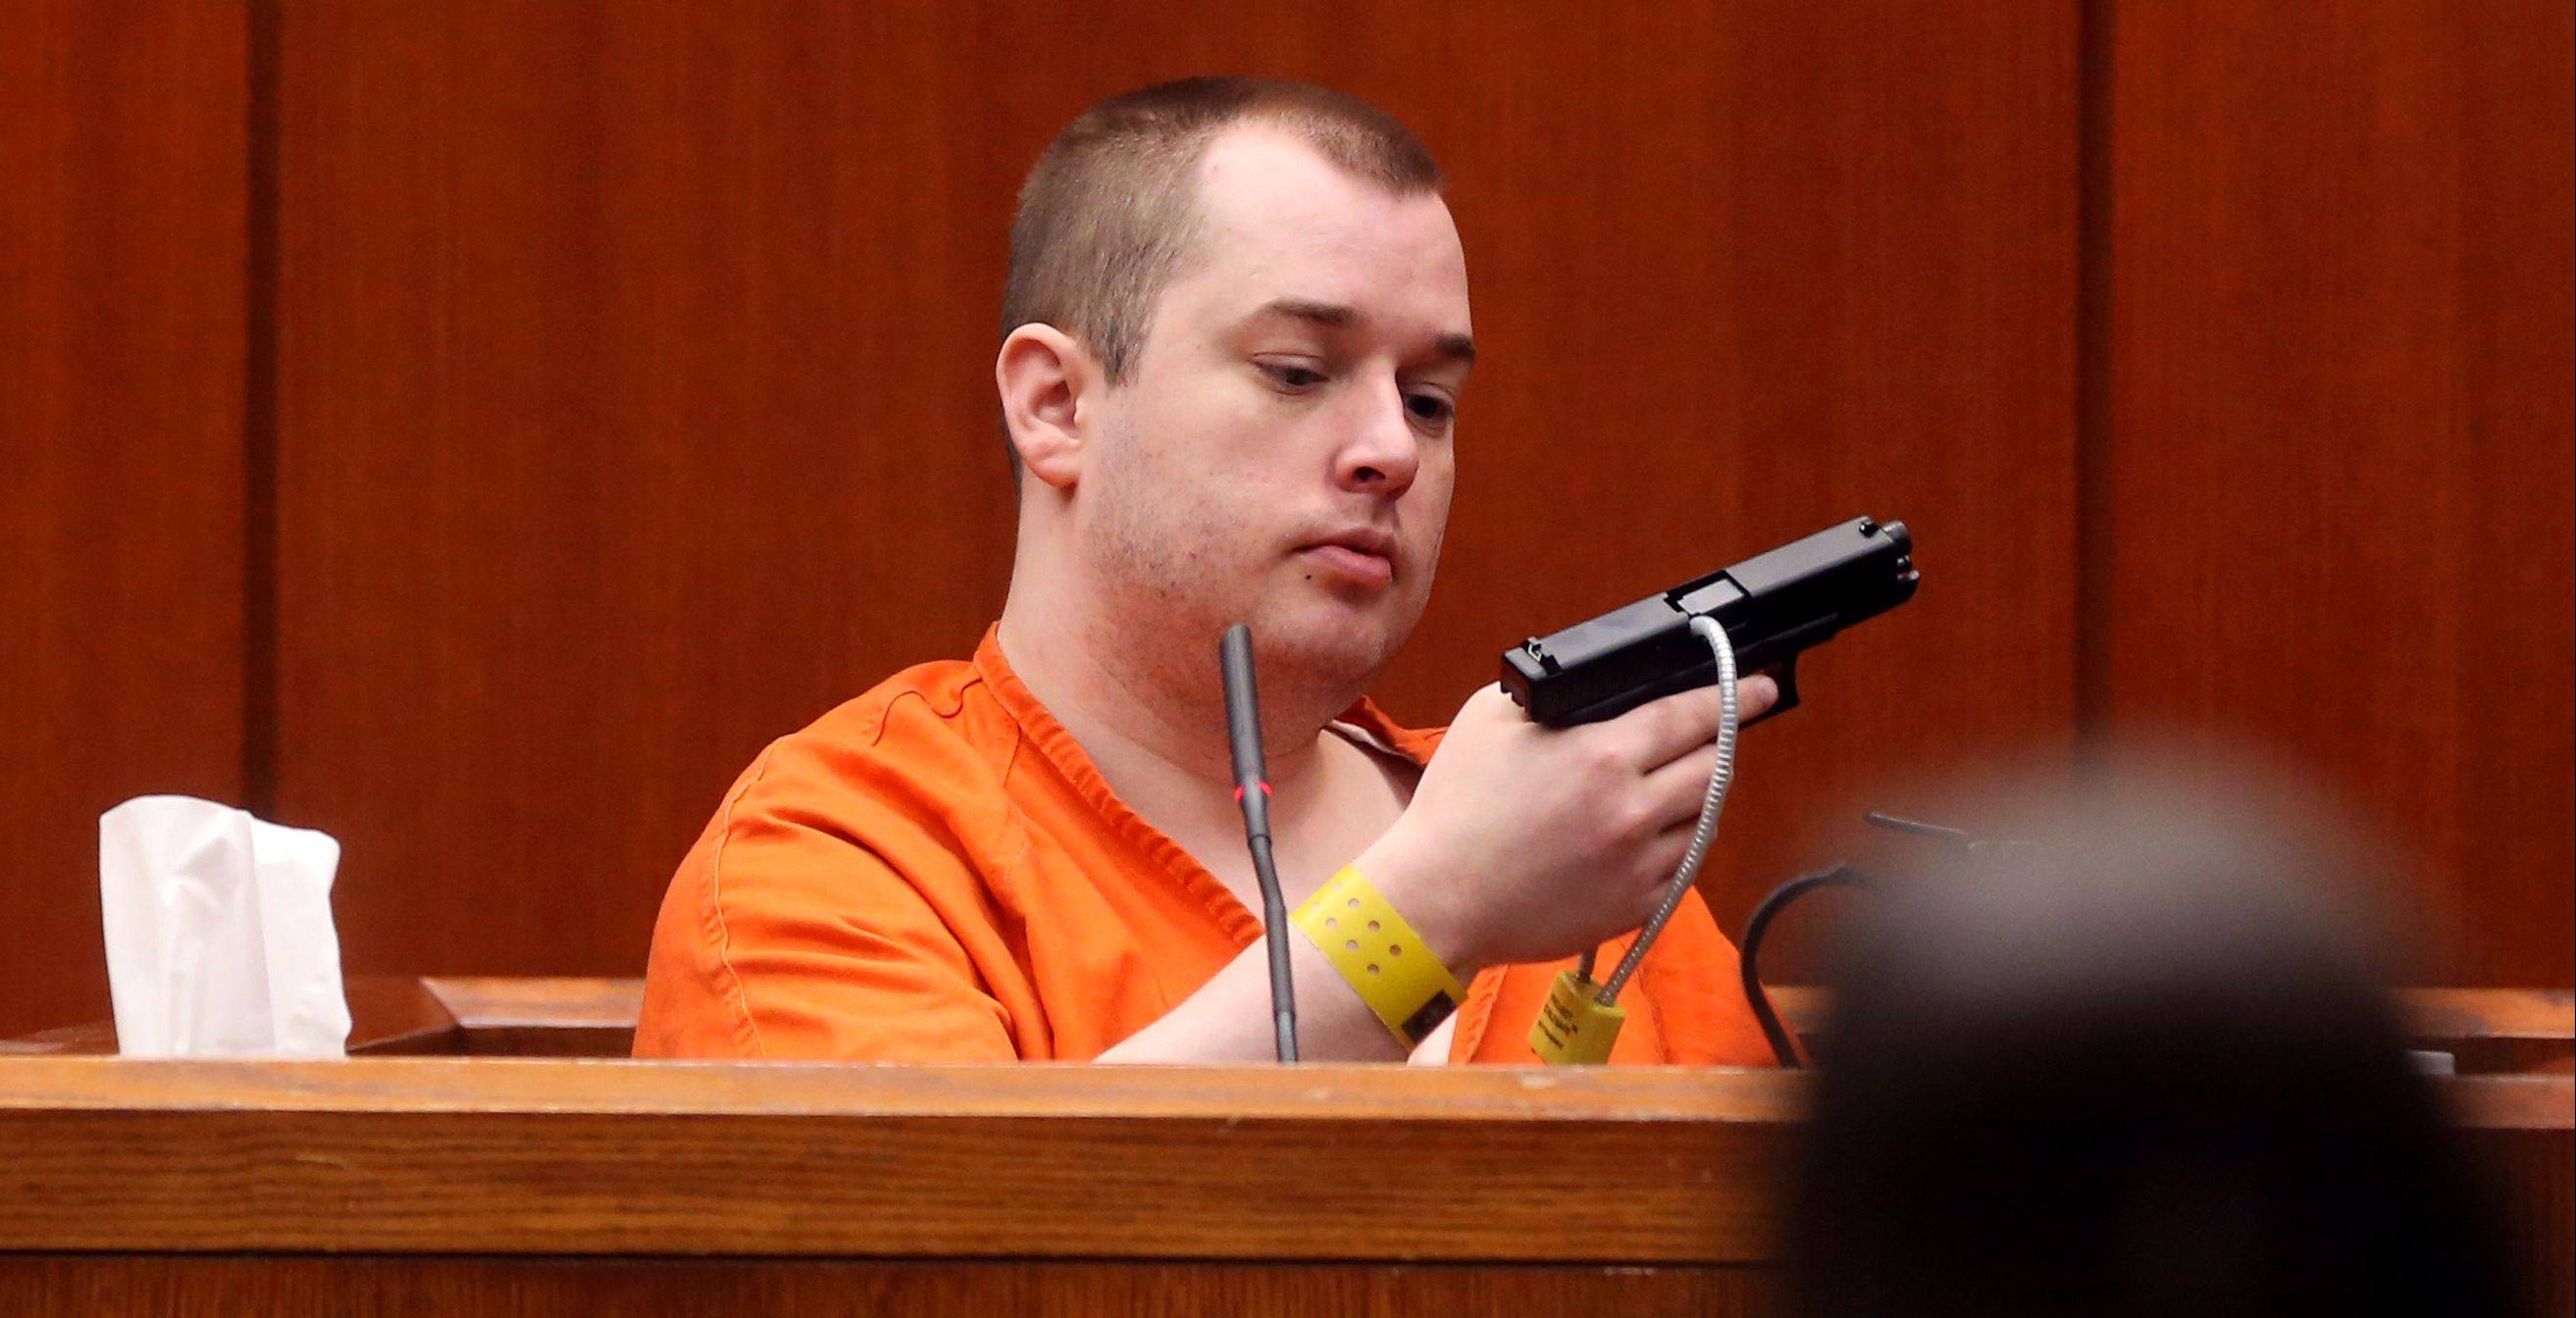 Jacob Nodarse holds the gun he used to shoot and kill Michael Kramer, 20, and Kramer's parents, Jeffrey, 50, and Lori, 48, during cross-examination in the trial of Johnny Borizov.